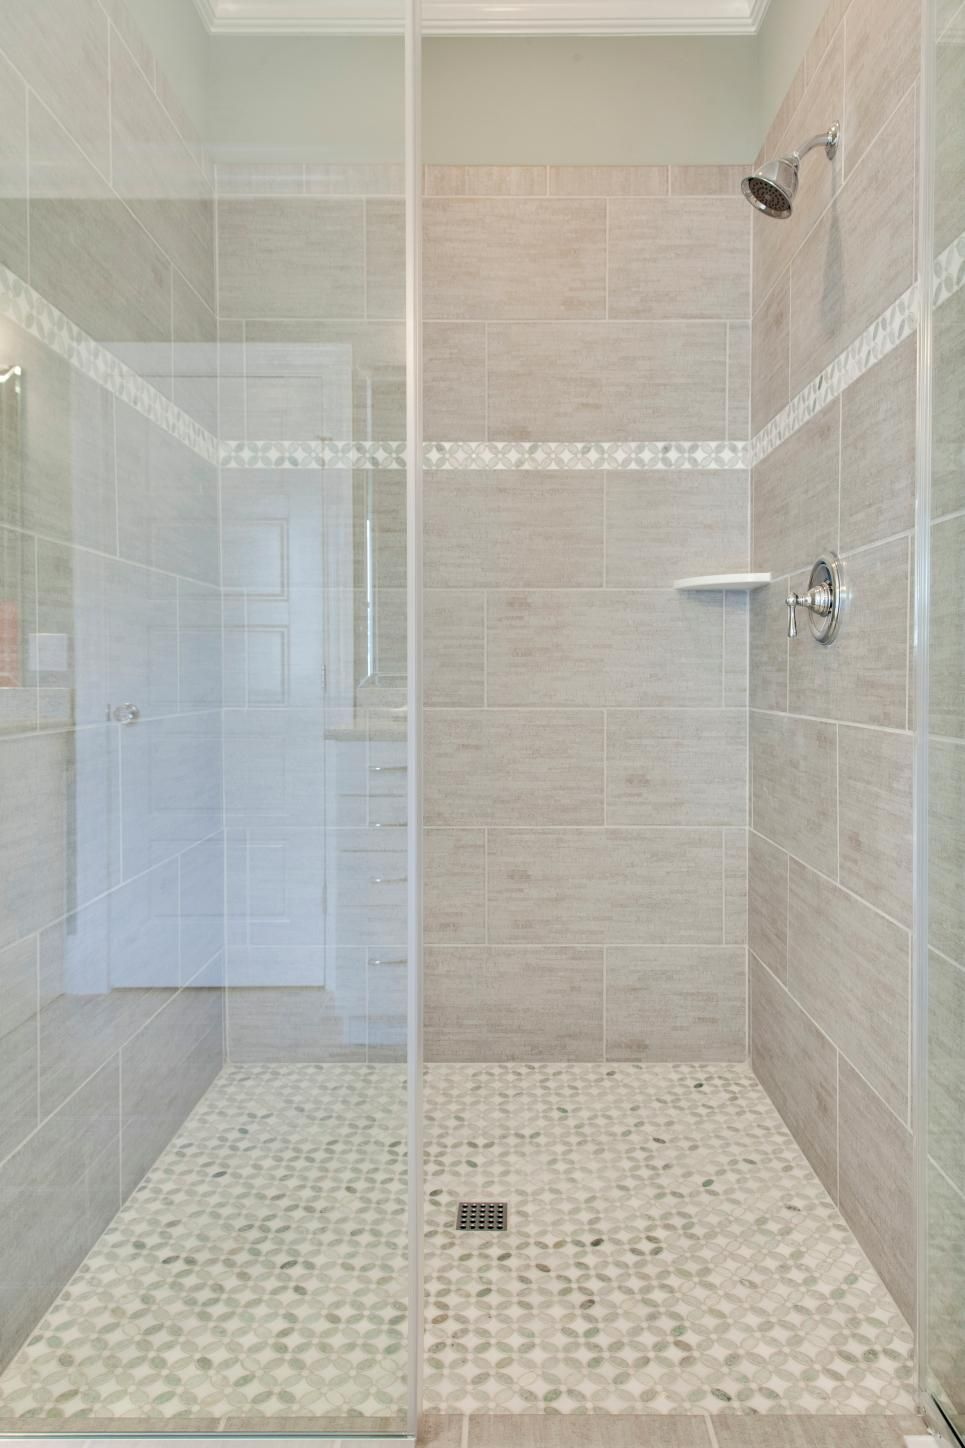 This Spacious Walk In Shower Features Large Gray Tiles With A Textured Look Smaller Tiles In A Criss Cross Pattern Cover The Floor And Shower Remodel Gray Shower Tile Shower Floor